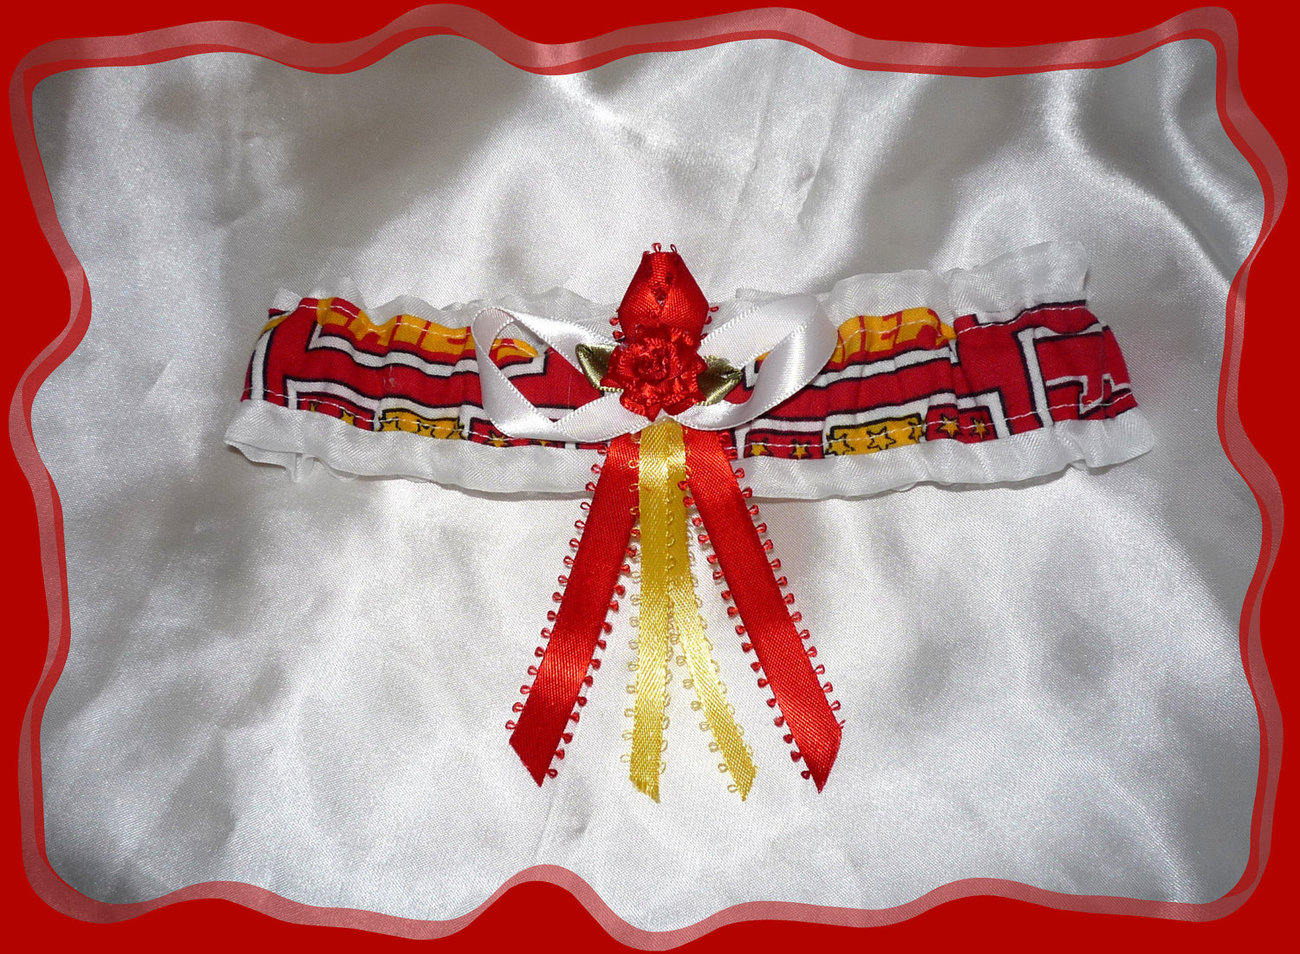 Kansas City Chiefs NFL Fabric Flower Wedding Garter Toss